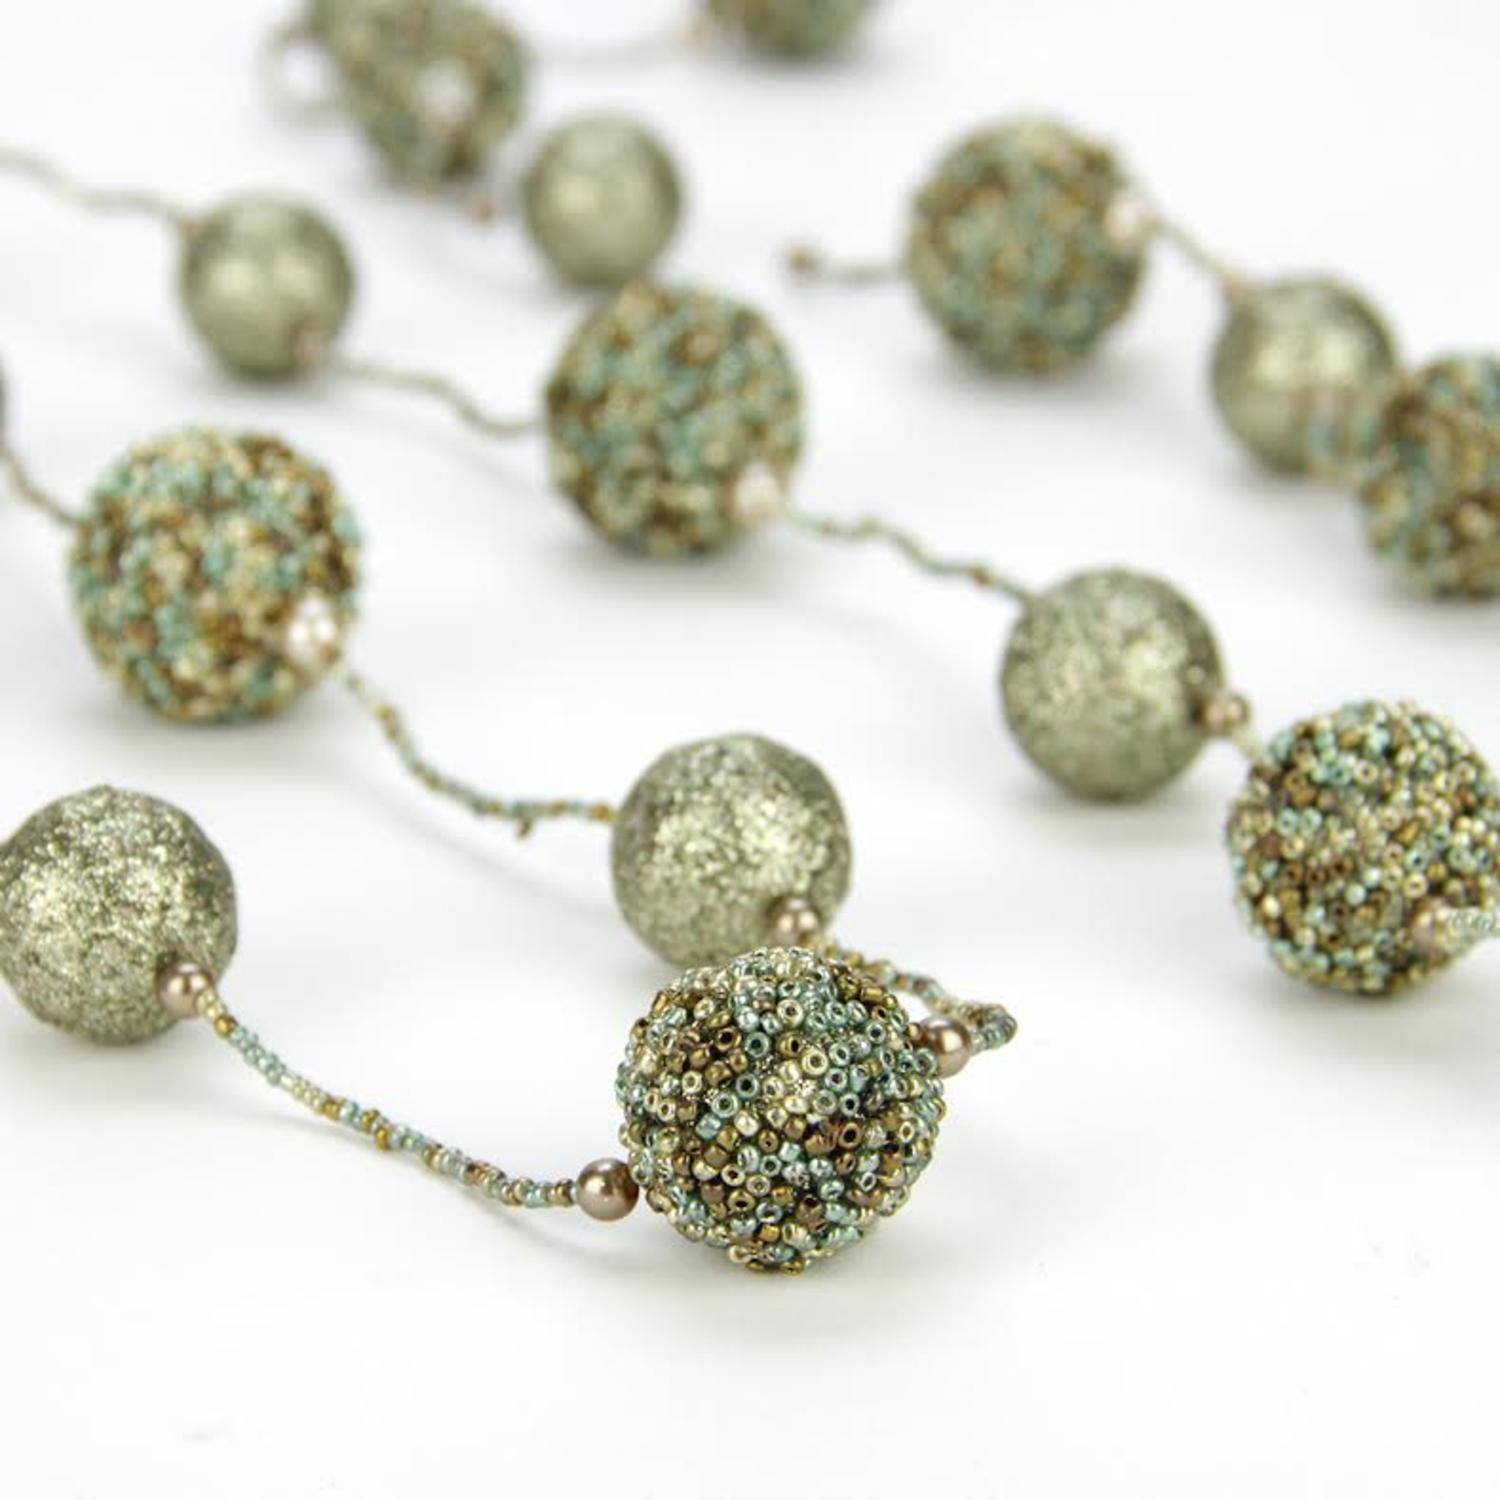 6' Fancy Green, Gold and Brown Beaded and Glittered Christmas Ball Garland